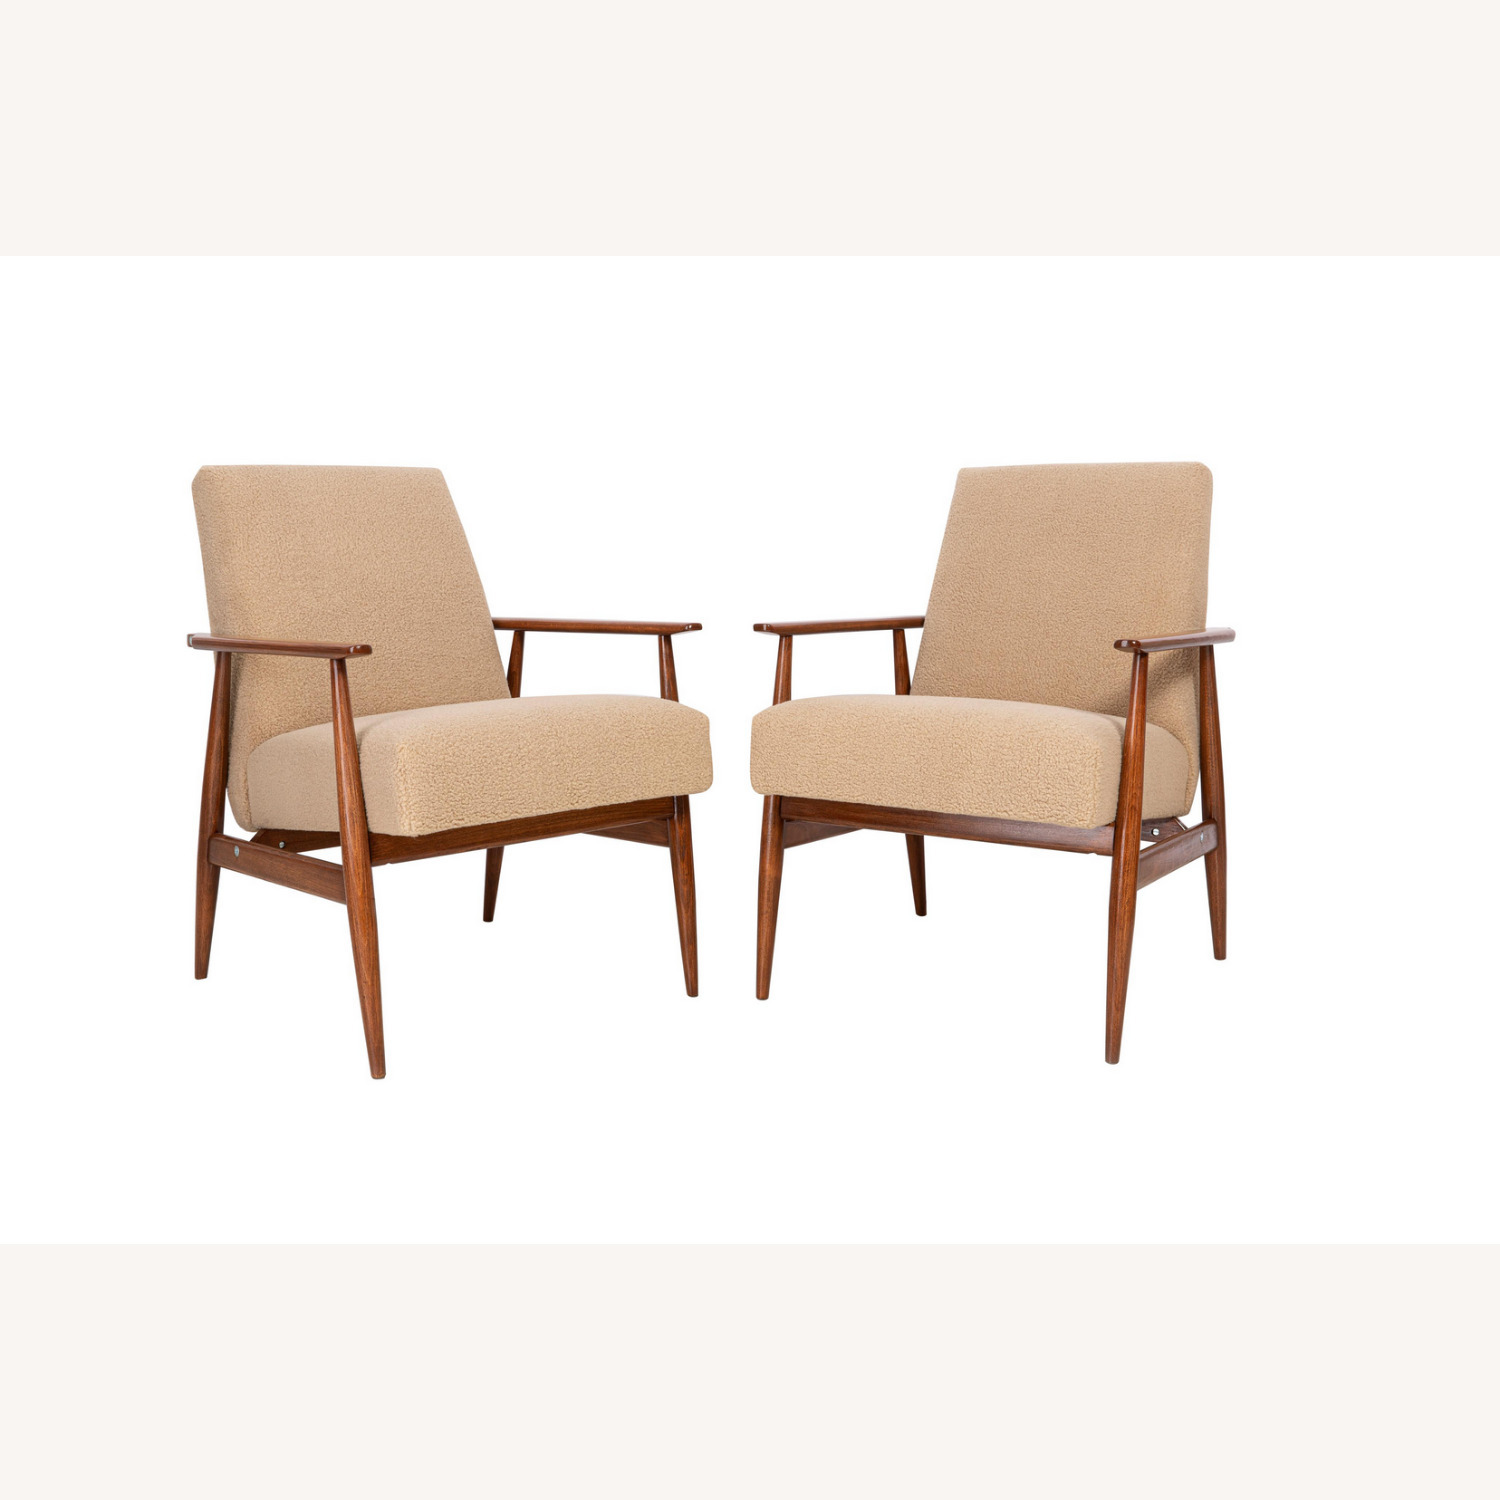 Pair of Mid Century Modern Armchairs, 1960s - image-3